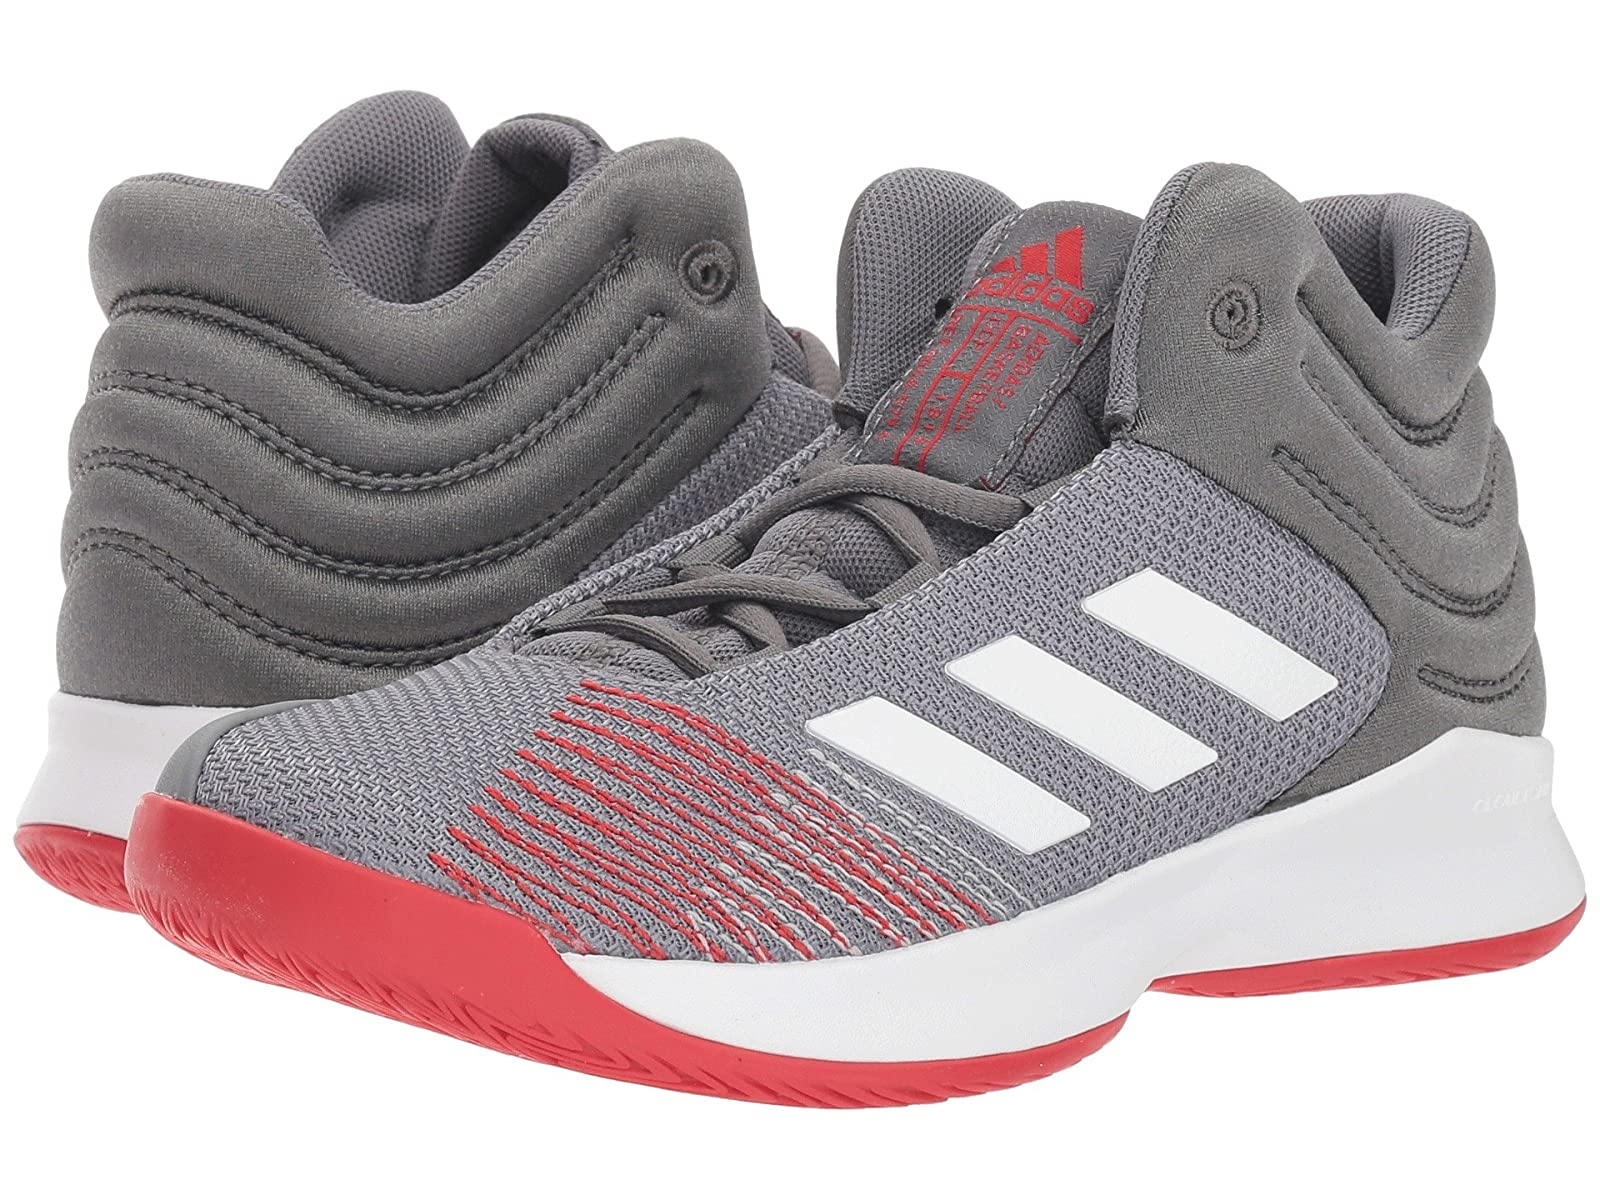 adidas Kids Pro Spark Basketball Wide (Little Kid/Big Kid)Atmospheric grades have affordable shoes